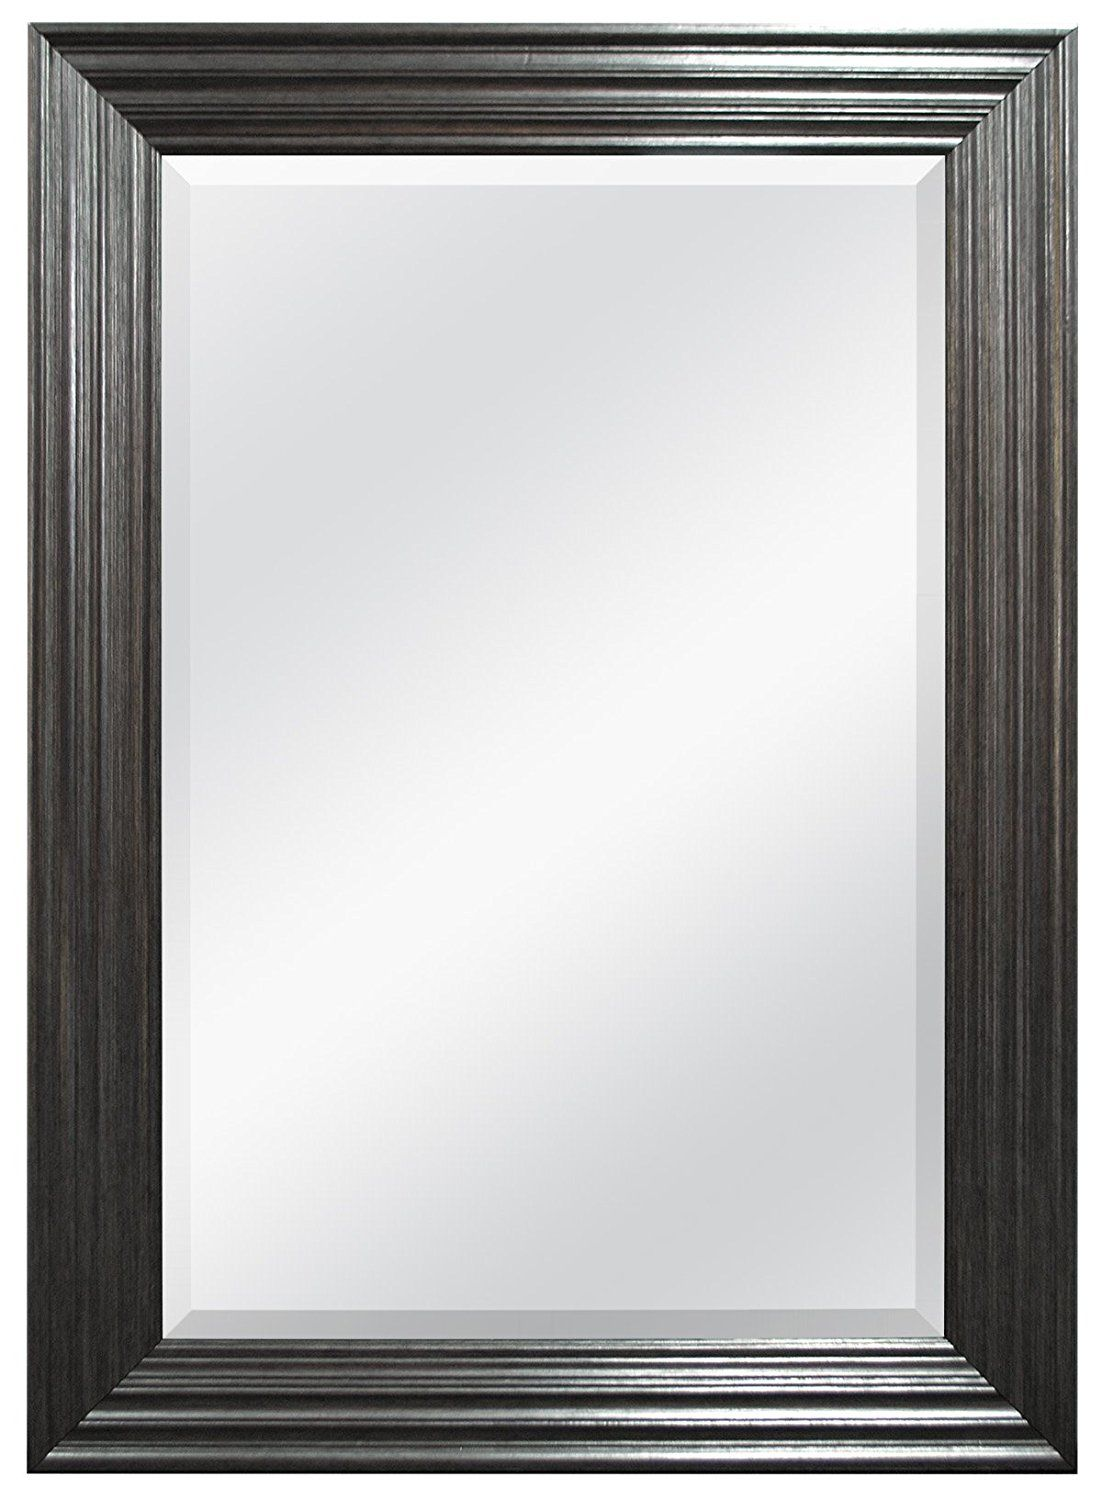 Mcs 24 By 36 Inch Beveled Mirror 32 By 44 Inch Pewter Ridged Finish For More Information Visit Image Link This Is An Affiliate Link Mirror Beveled Mirror